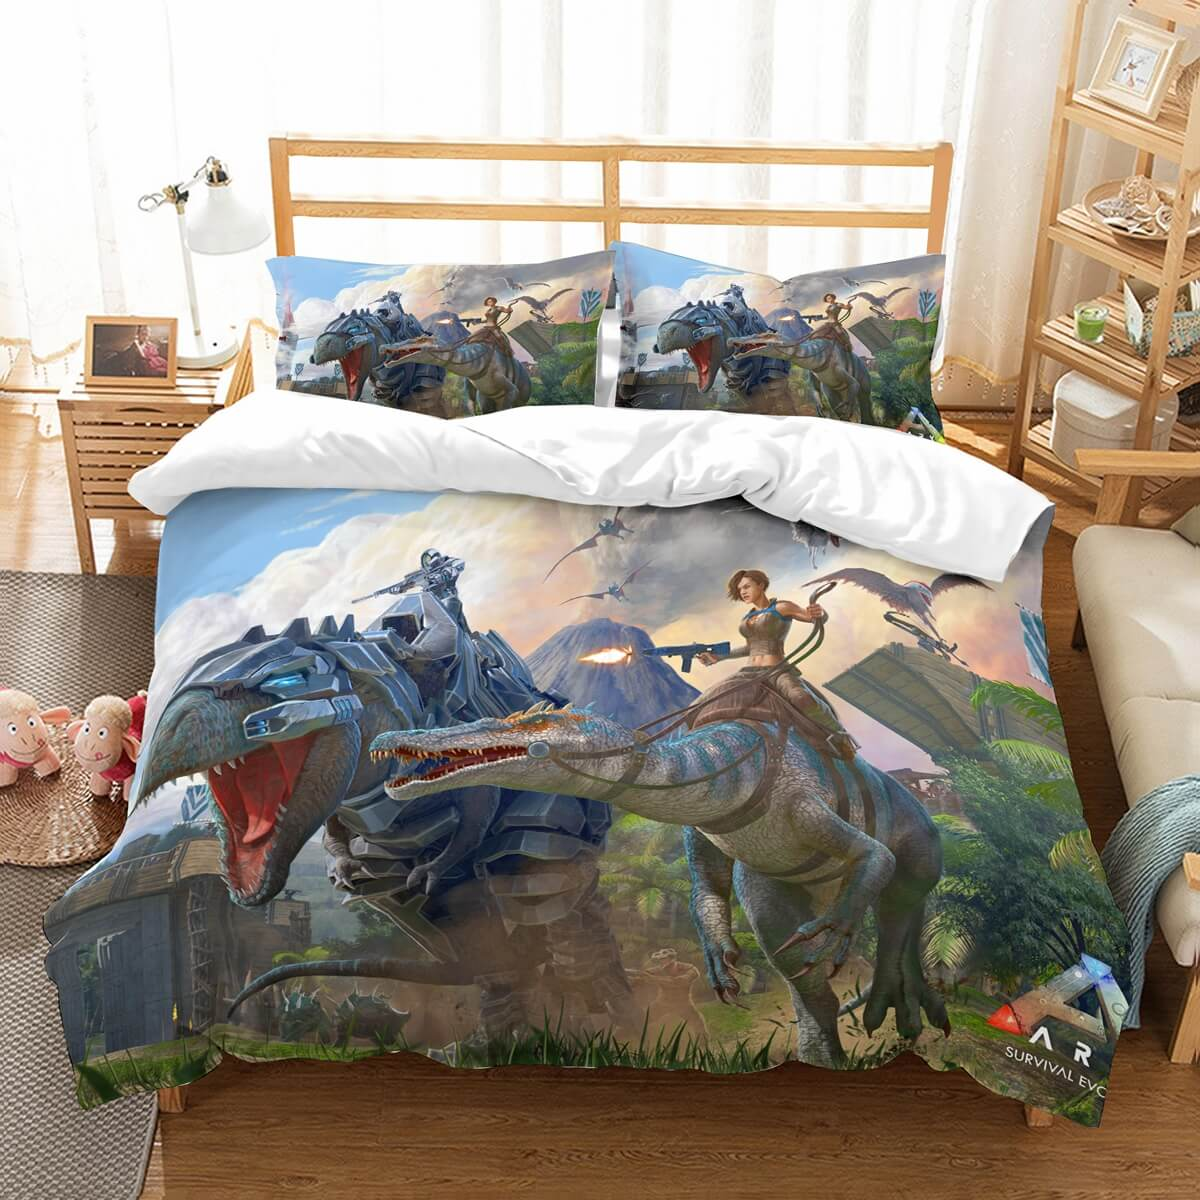 3D Customize Ark Survival Evolved Bedding Set Duvet Cover Set Bedroom Set Bedlinen